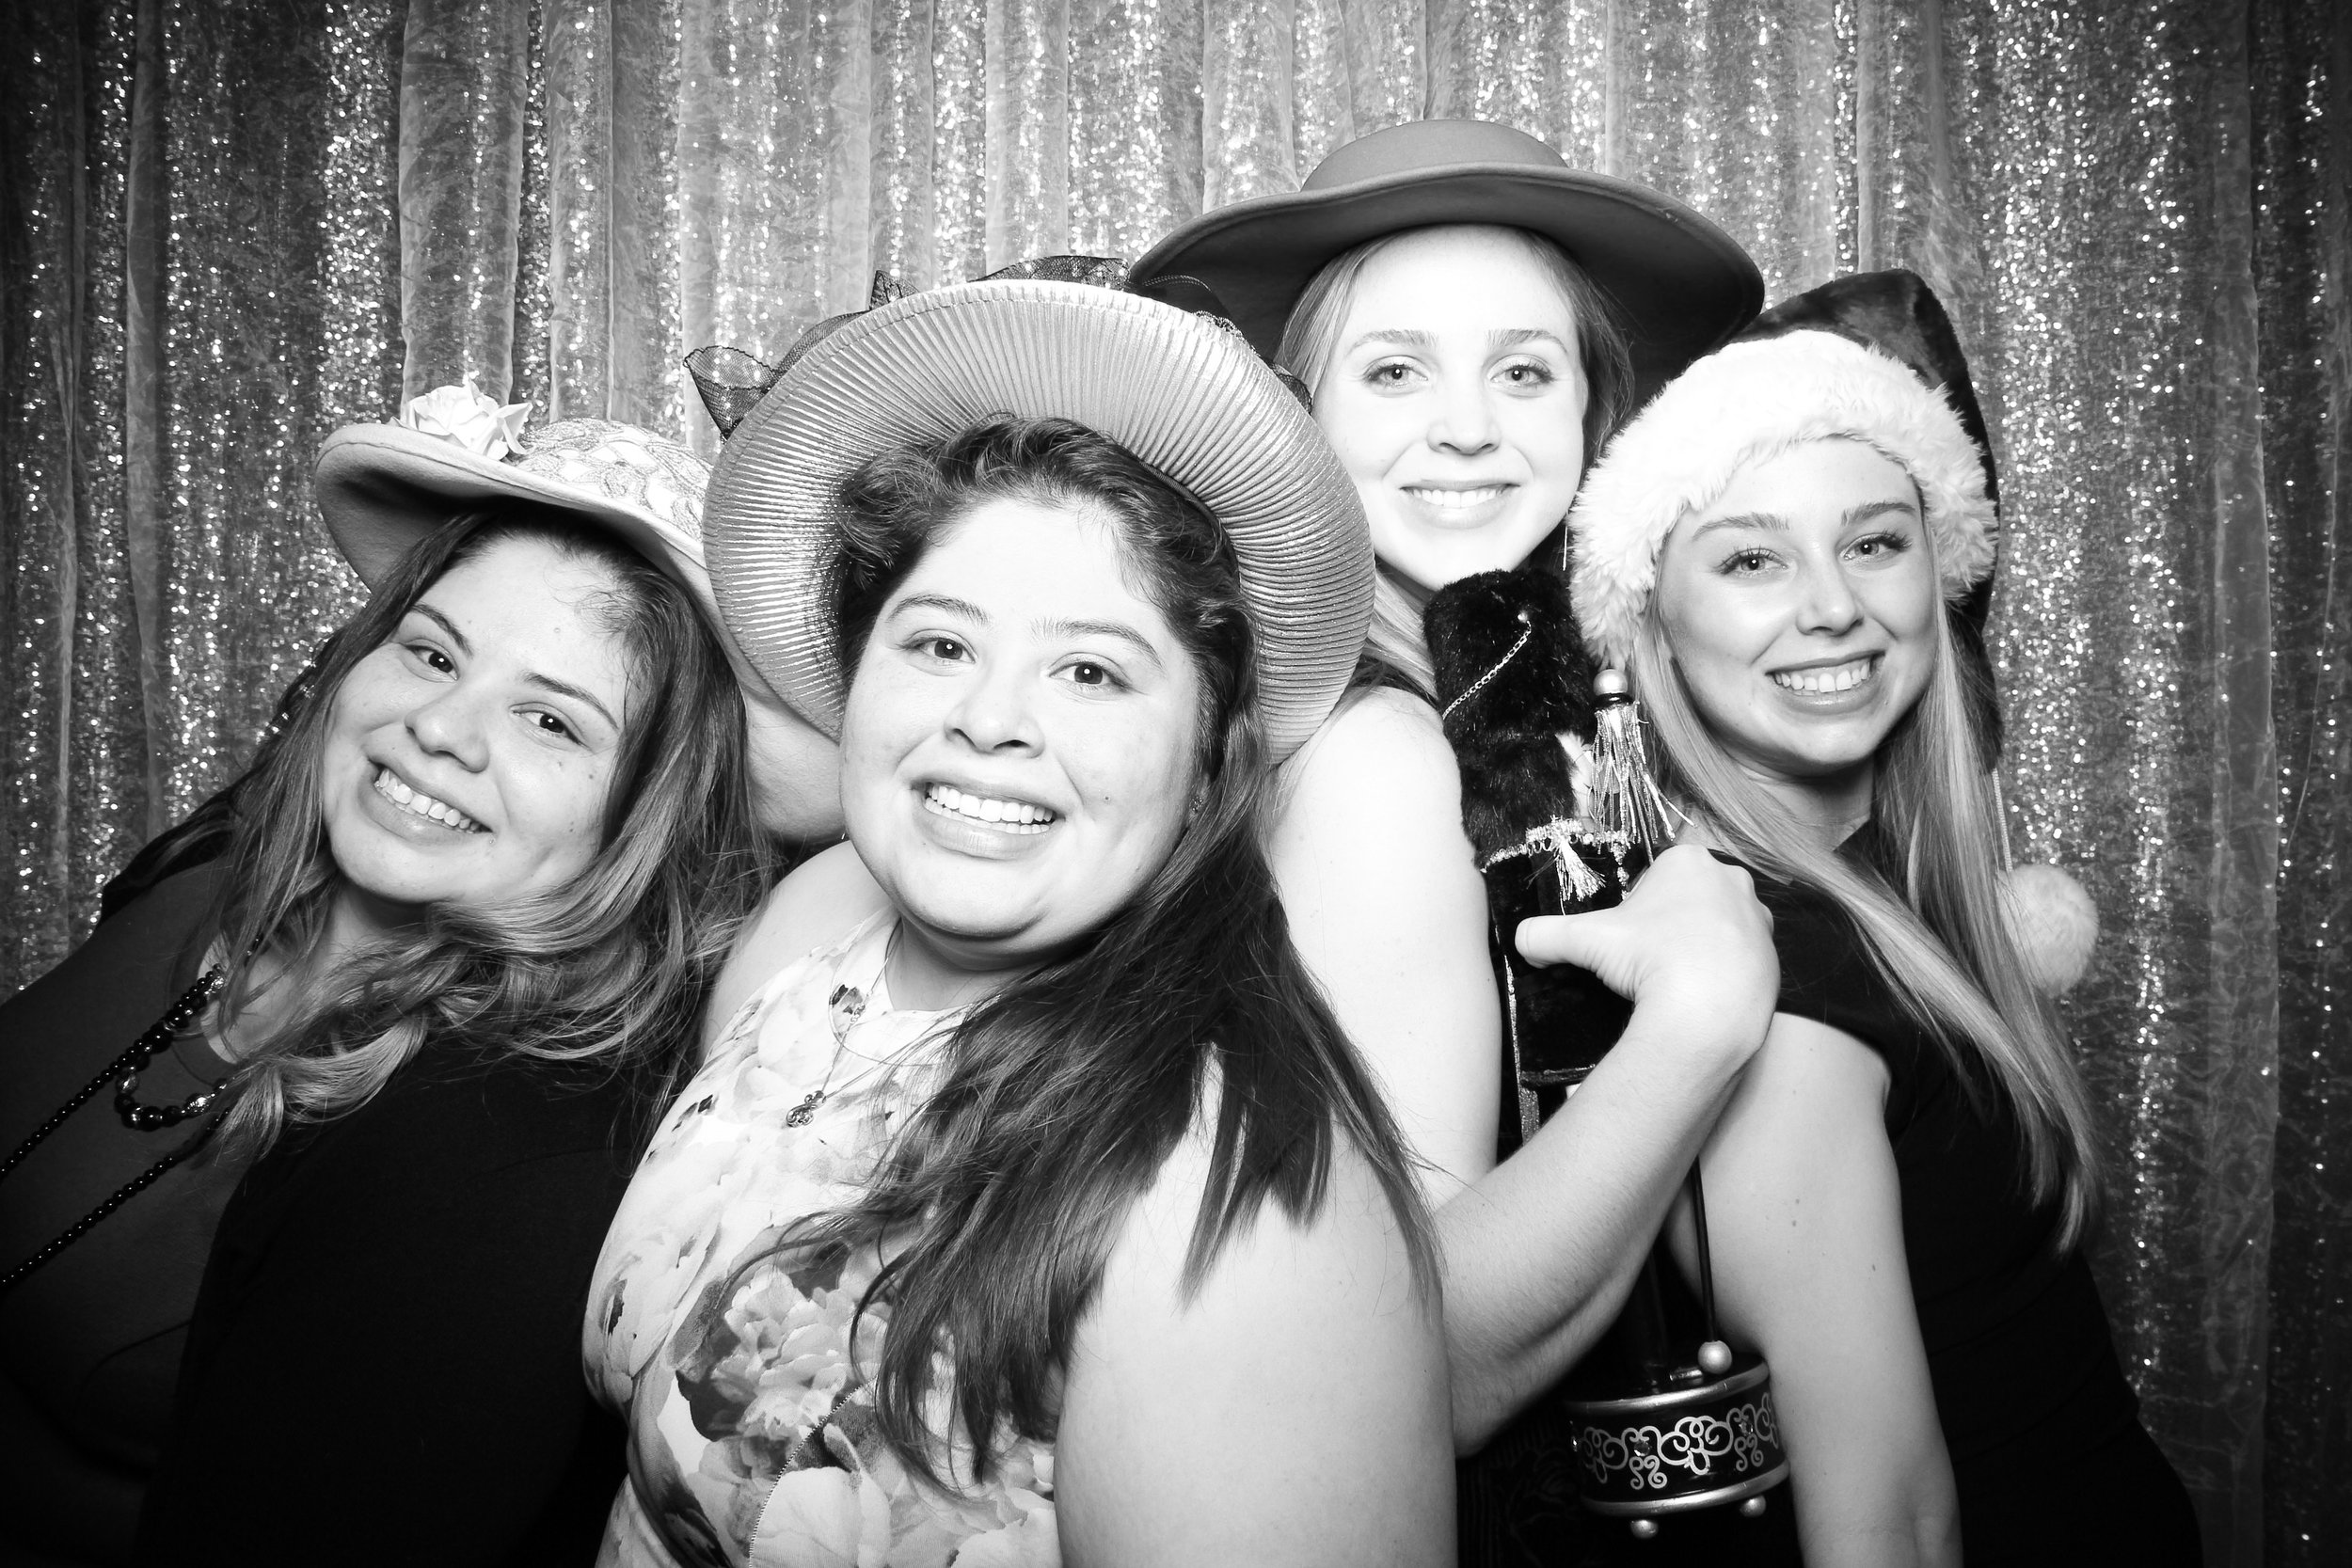 Chicago_Vintage_Photobooth_Montgomery_Club_Holiday_Party_25.jpg